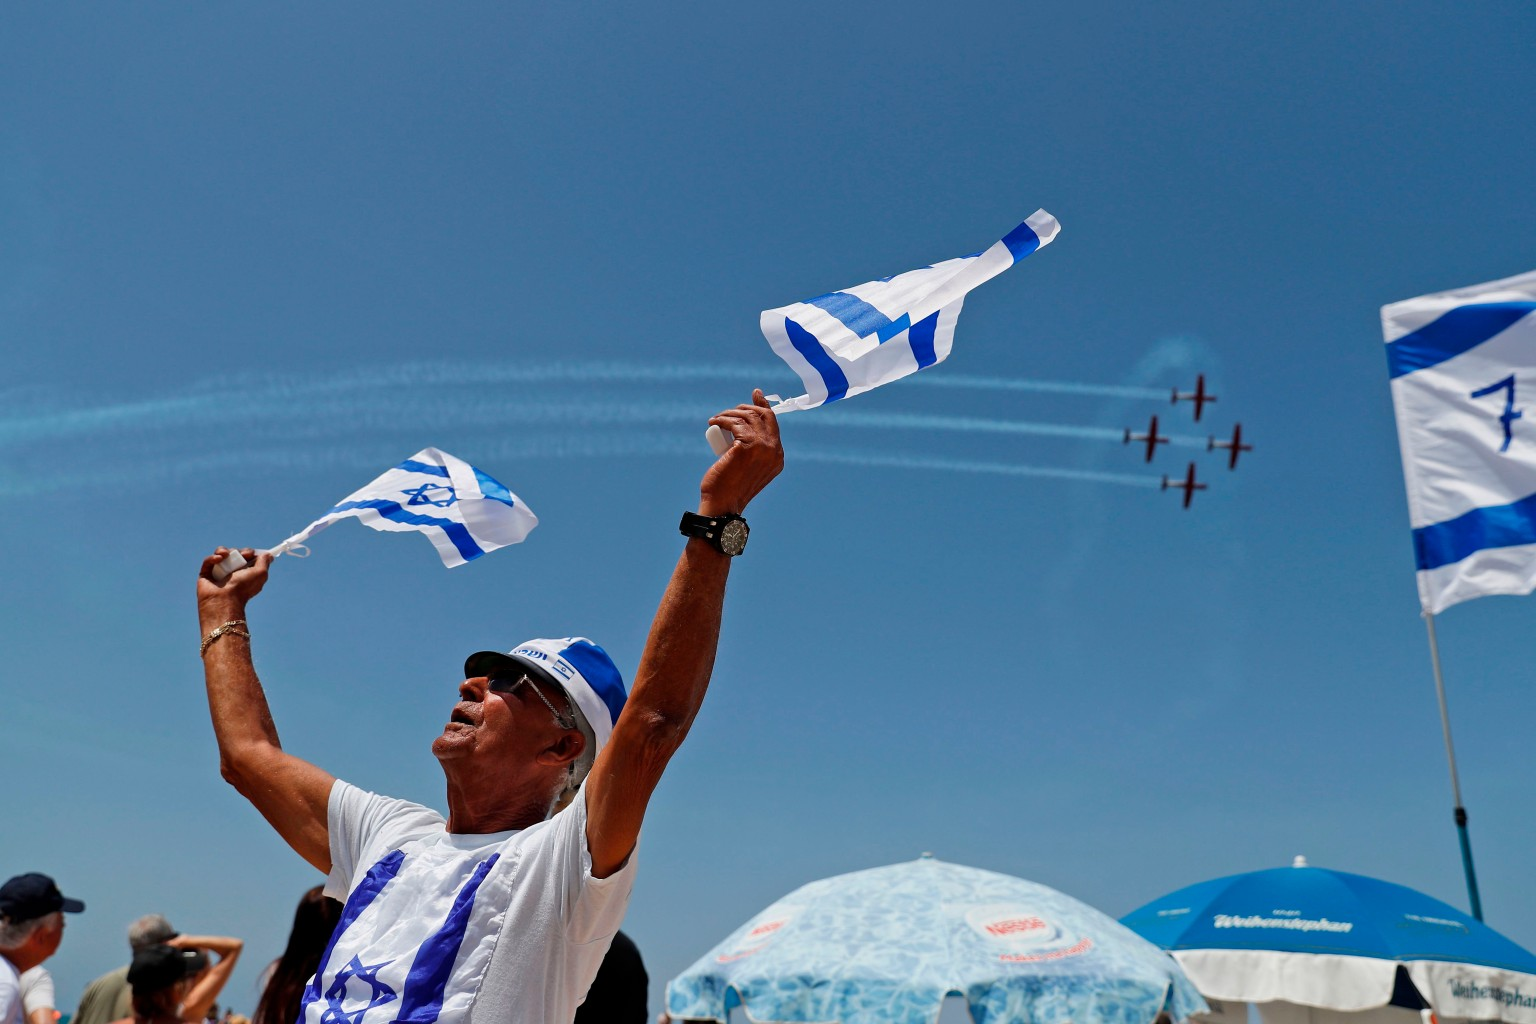 An Israeli takes part in his country's Independence Day on April 19 as planes fly overhead in the Mediterranean coastal city of Tel Aviv. Israel is marking 70 years since the founding of the country according to the Hebrew calendar. AHMAD GHARABLI/AFP/Getty Images